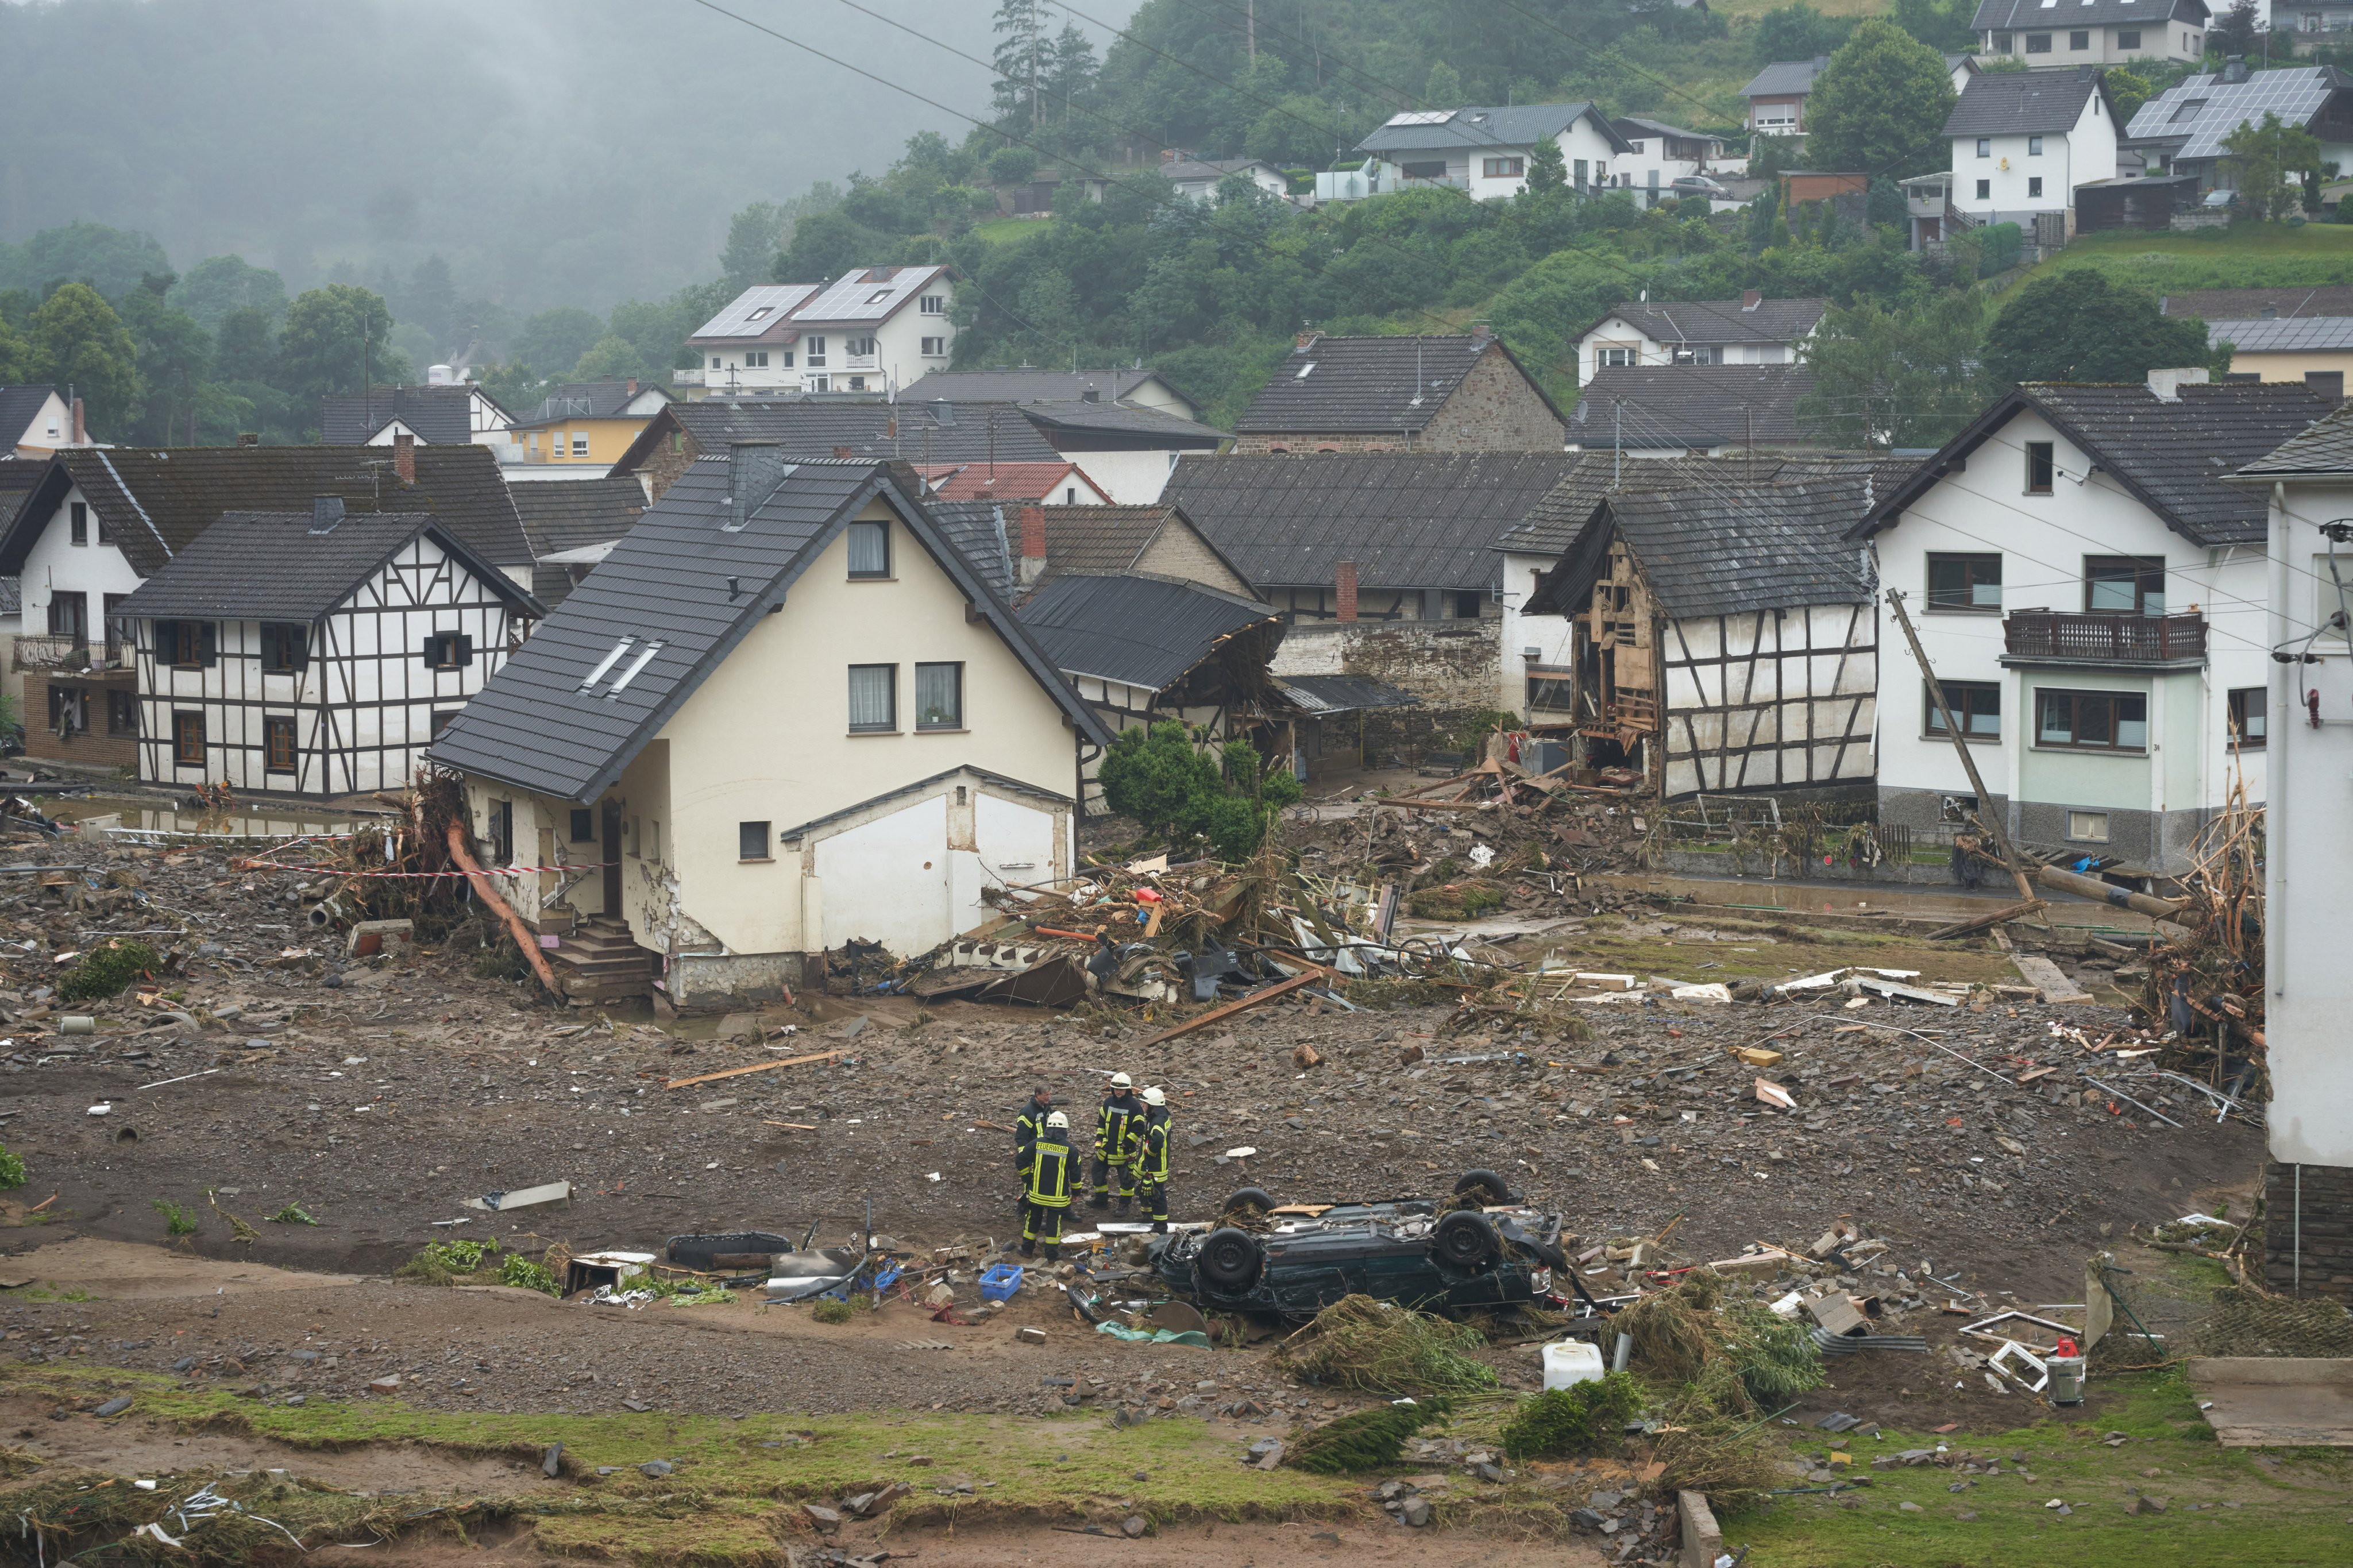 After the storm in Rhineland-Palatinate